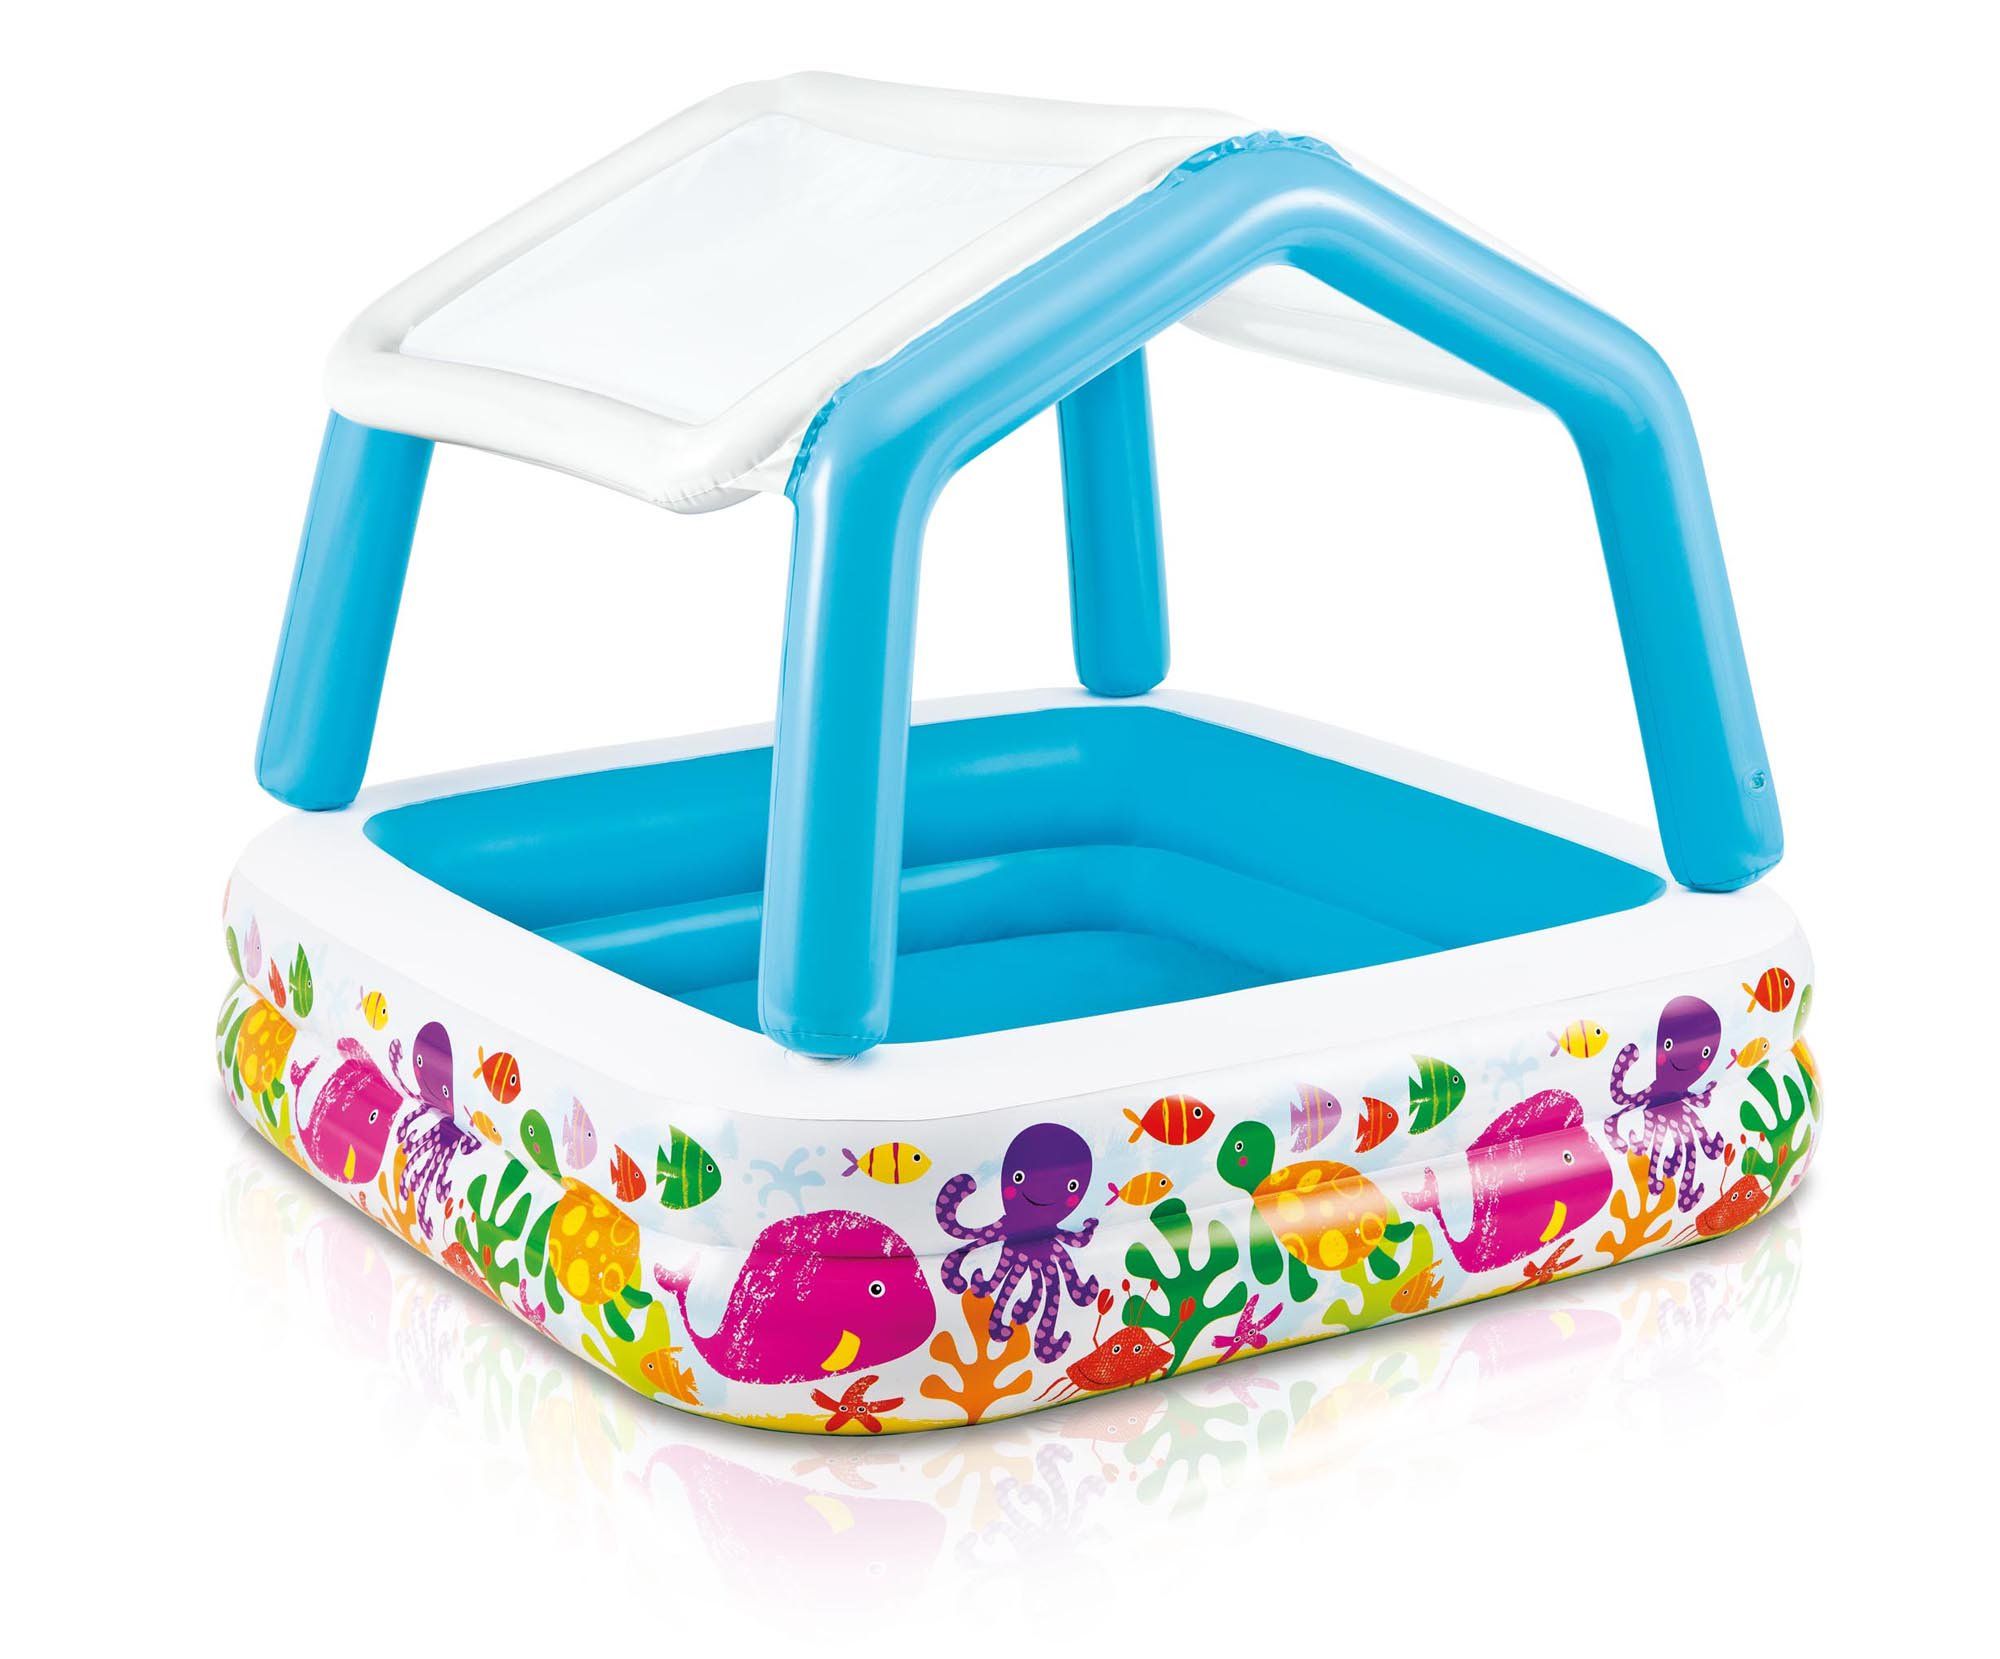 Intex Inflatable Ocean Scene Sun Shade Kids Swimming Pool With Canopy |  57470EP   Walmart.com